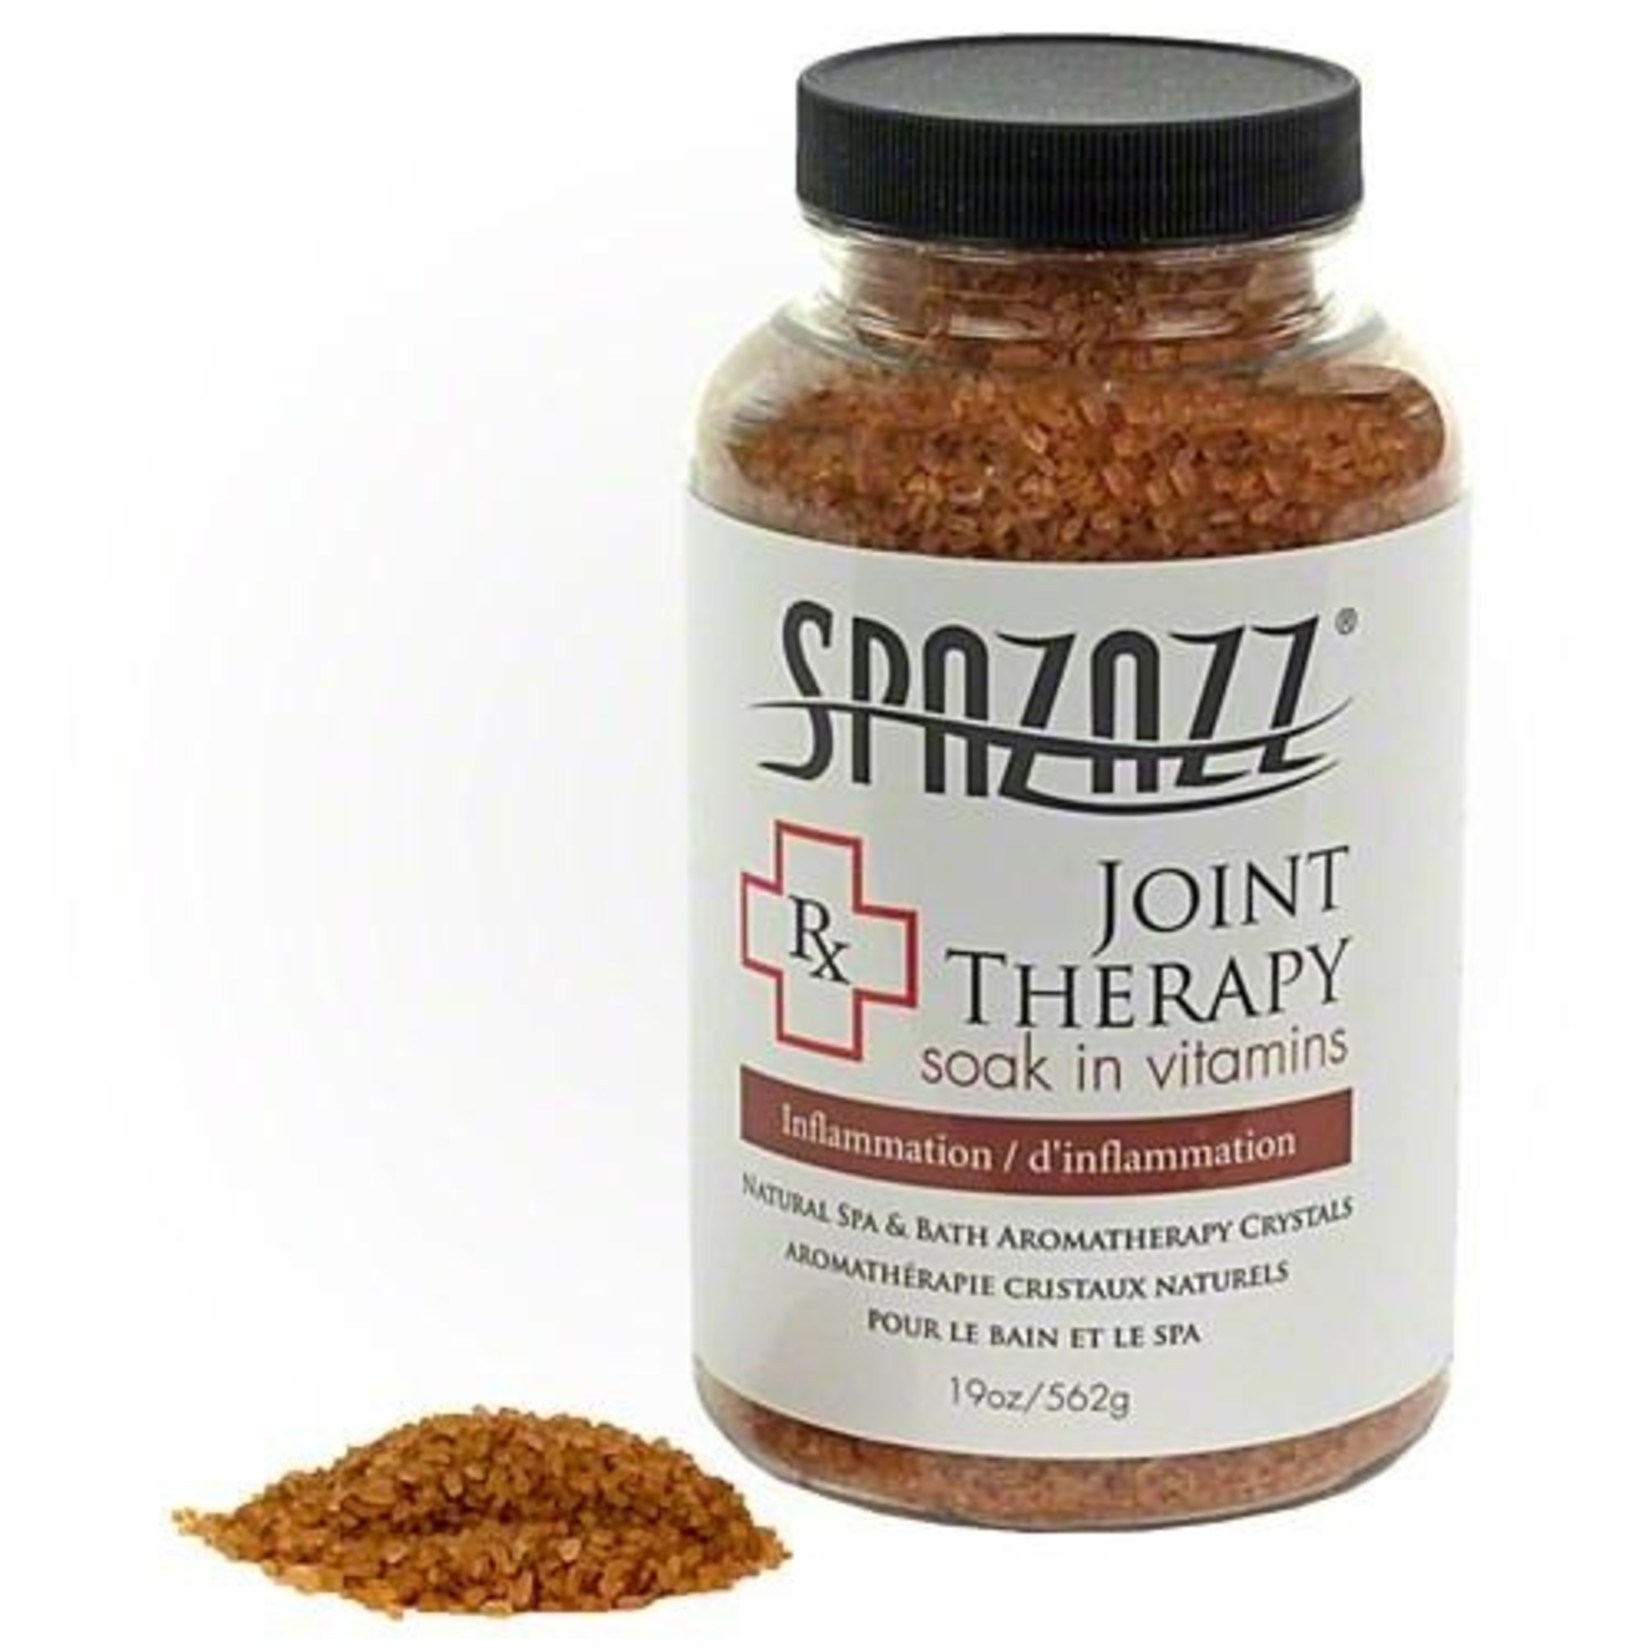 Spazazz Rx Therapy Crystals - Joint Therapy (562 g)